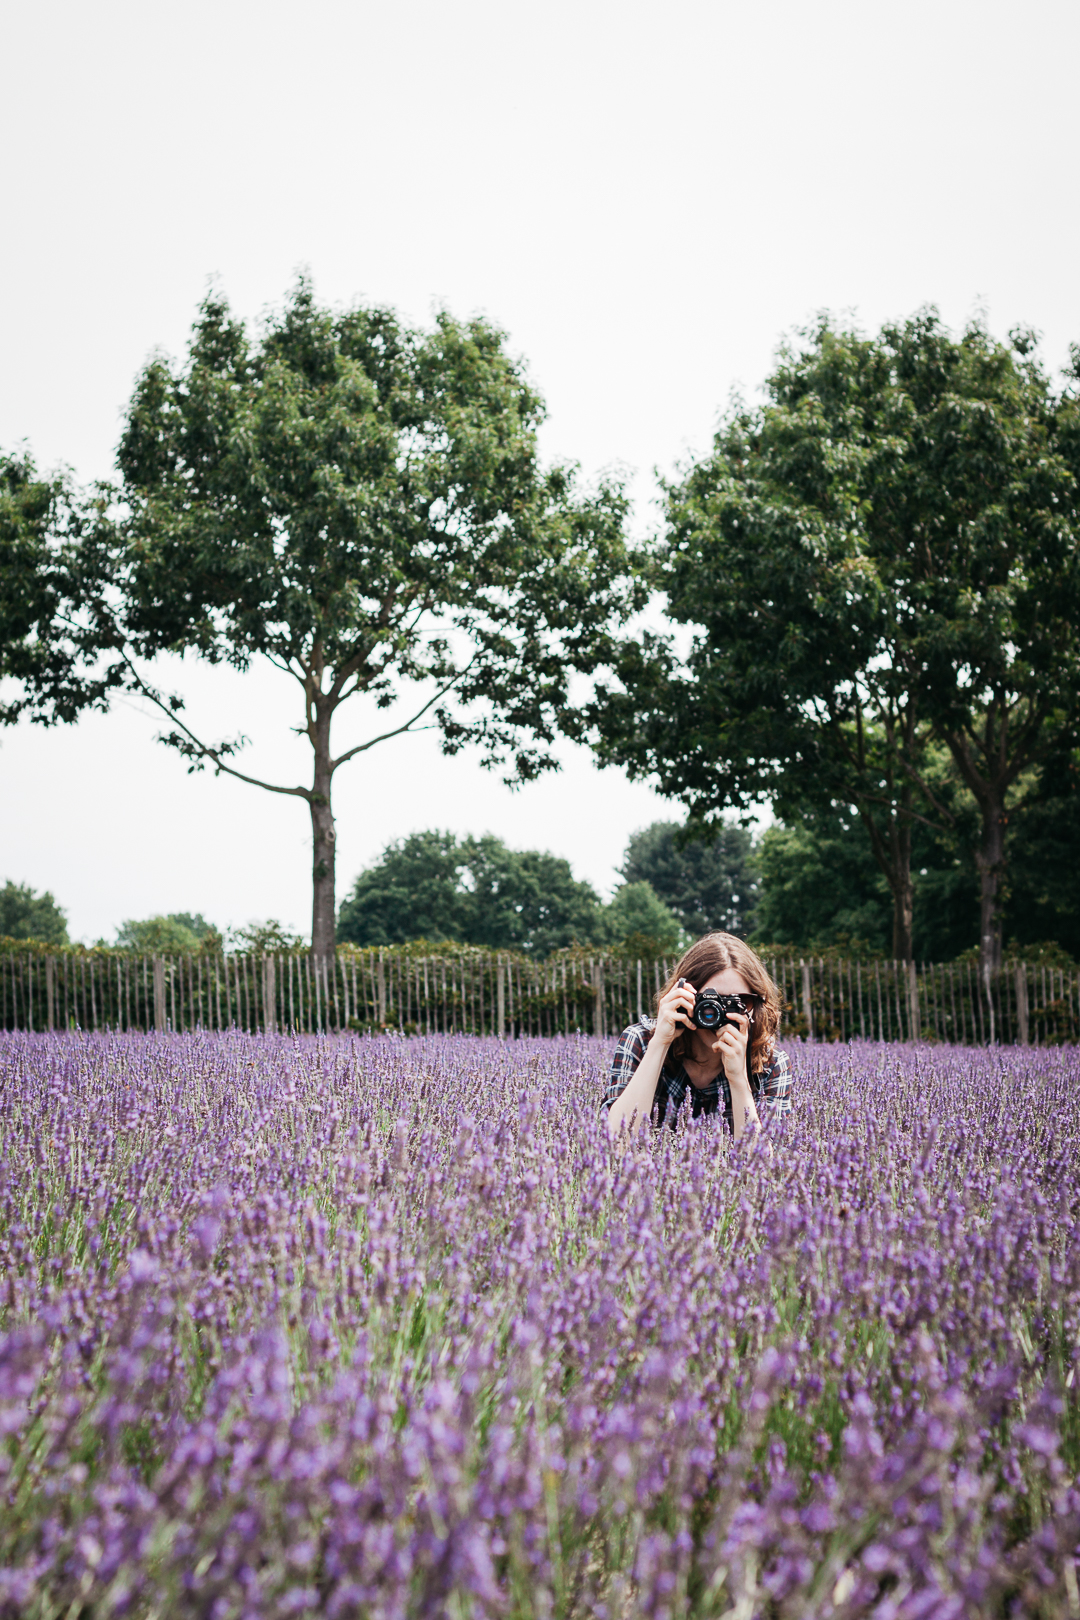 Smell the lavender